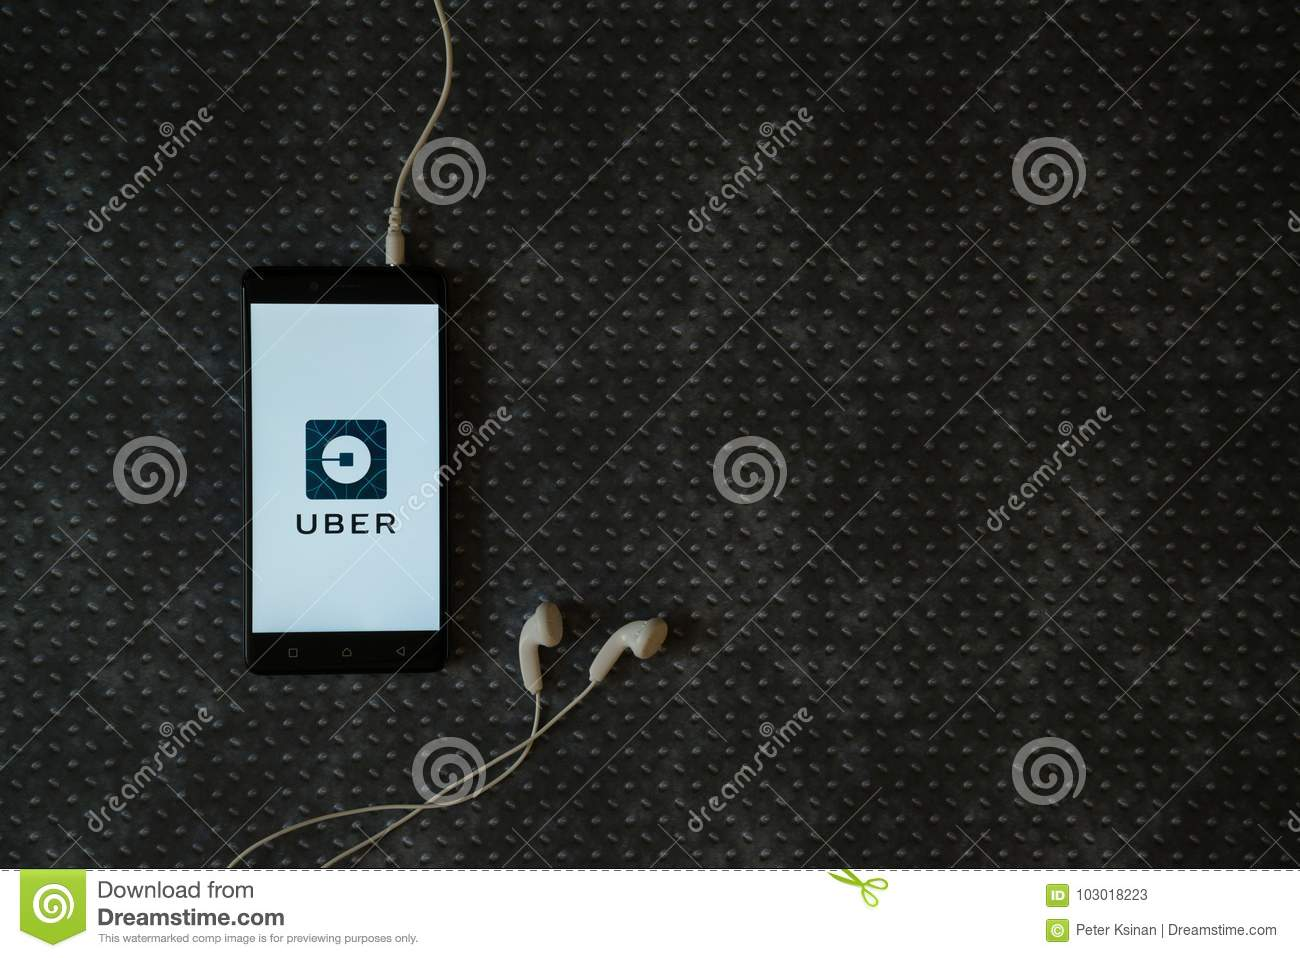 Uber stock symbol images symbol and sign ideas uber logo on smartphone screen editorial stock photo image uber logo on smartphone screen editorial stock biocorpaavc